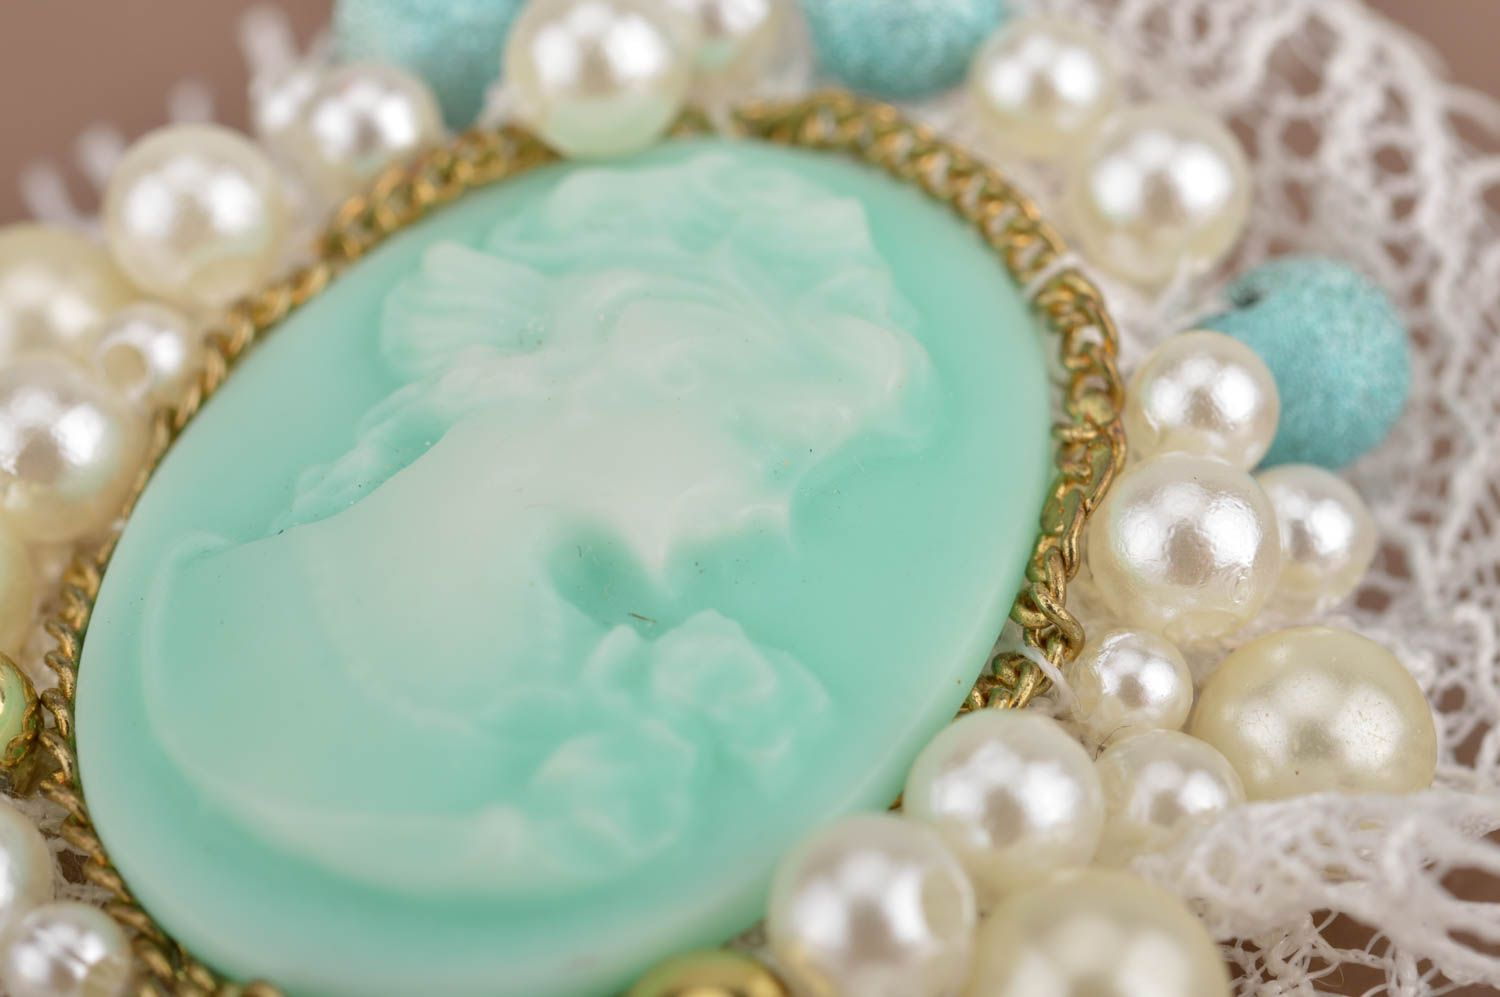 Handmade mint-colored cameo brooch with white lace accessory for women photo 4